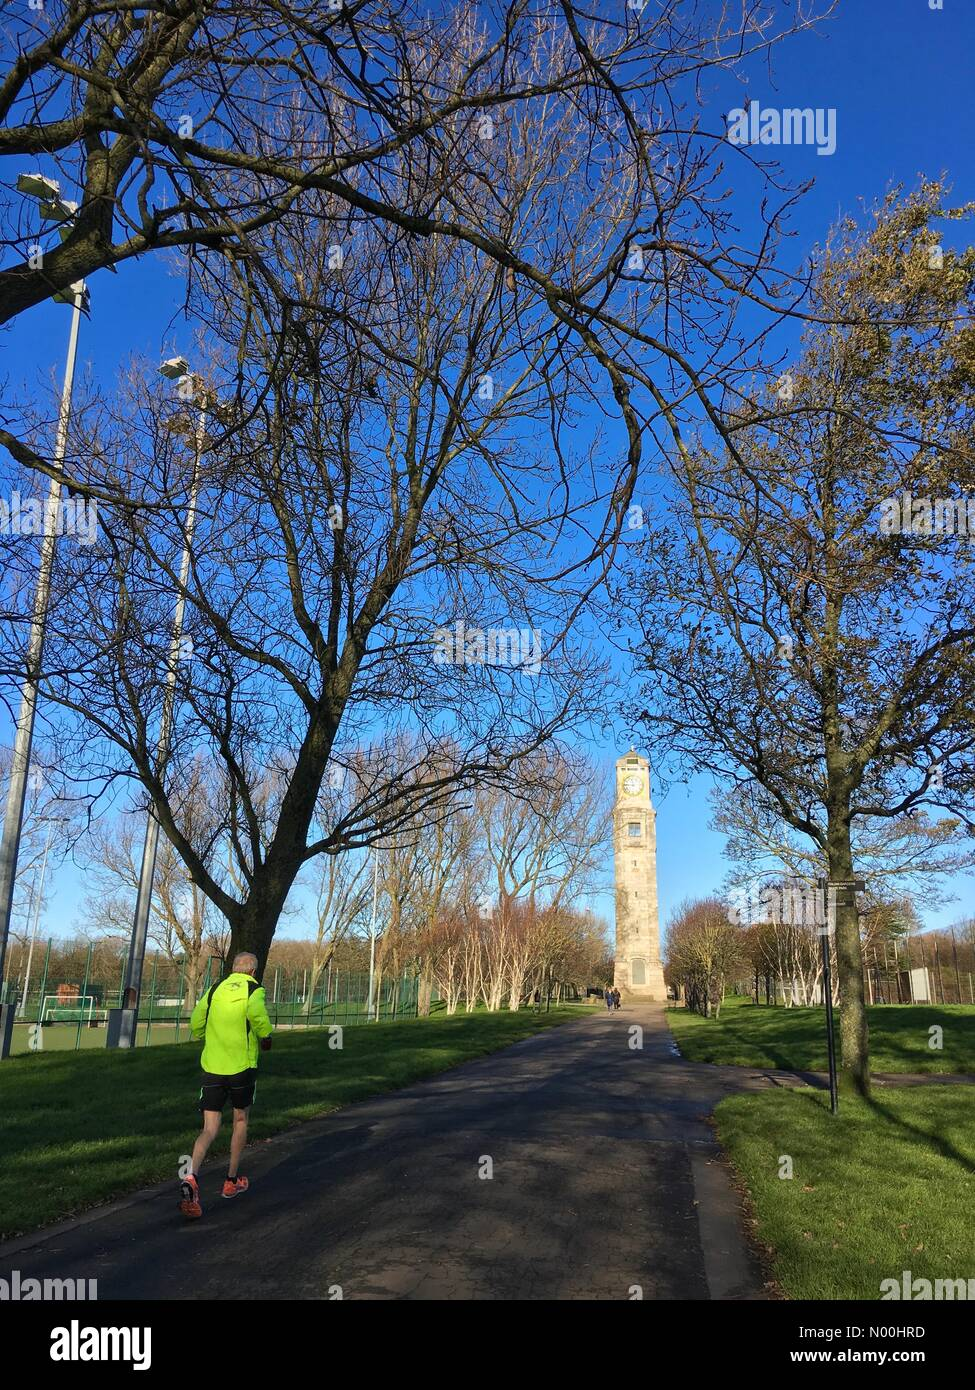 UK Weather: Sunny day in Blackpool. Clear blue skies but cold at the Clock Tower in Stanley Park, Blackpool - Stock Image